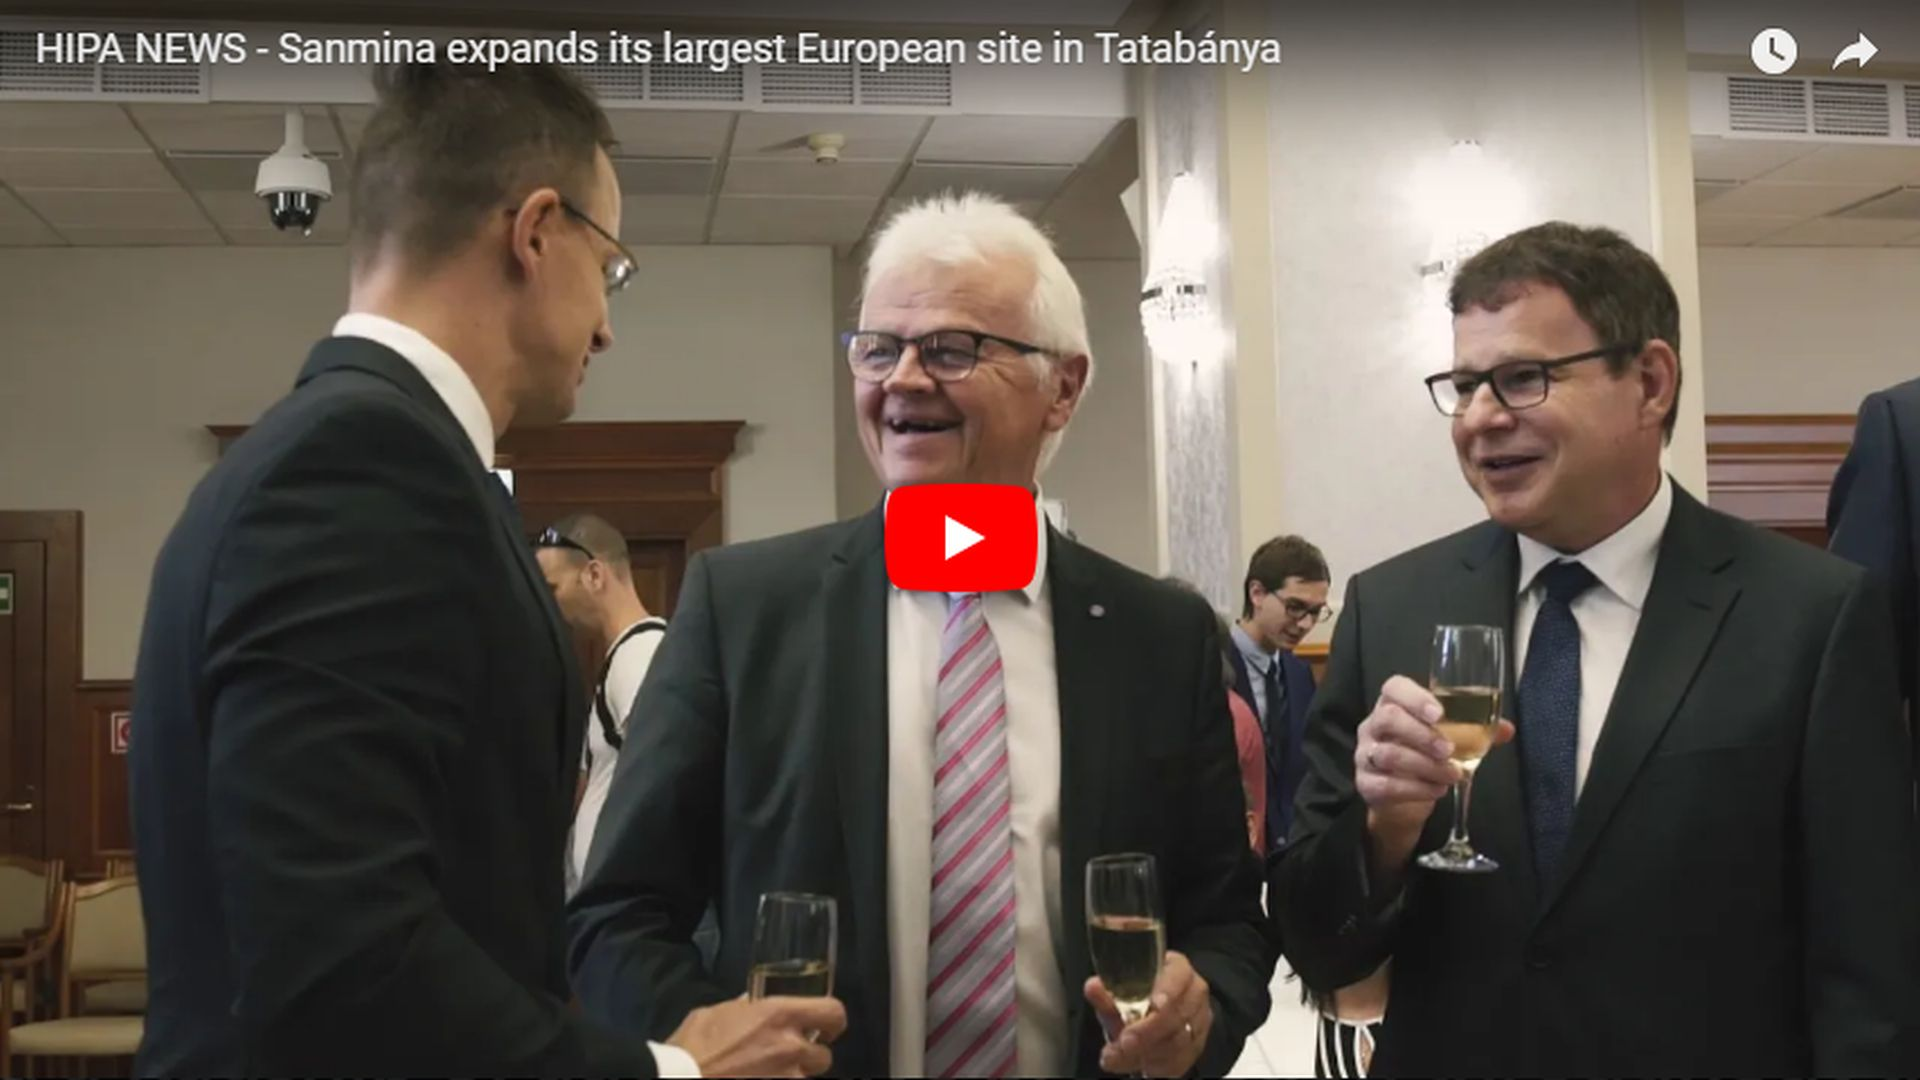 Sanmina further expands its largest European base - VIDEO REPORT